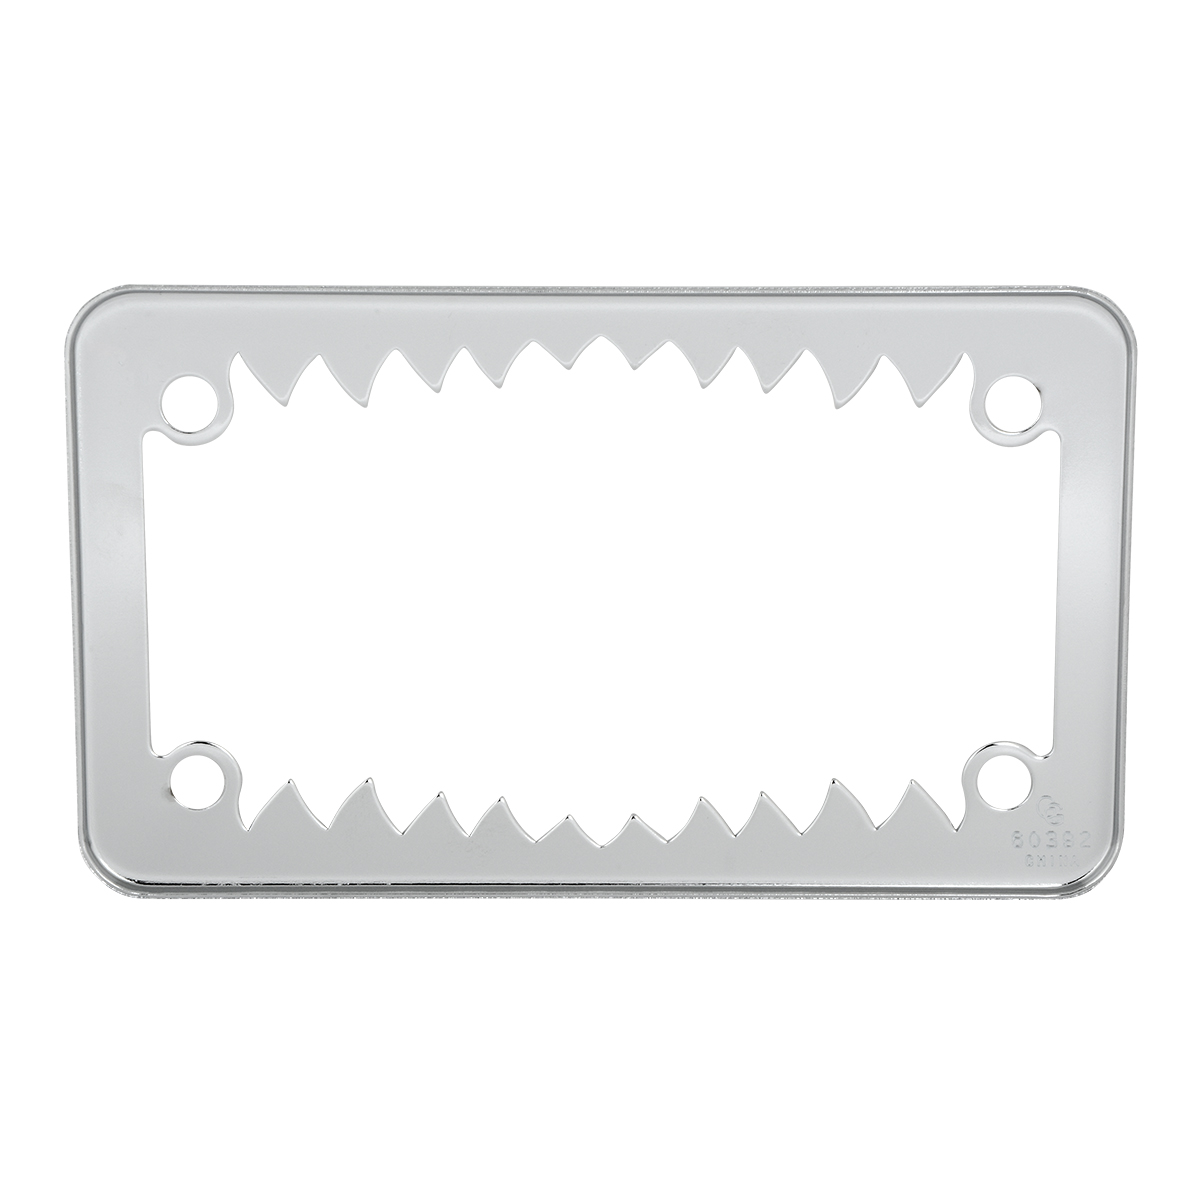 60392 Motorcycle Shark Teeth License Plate Frame